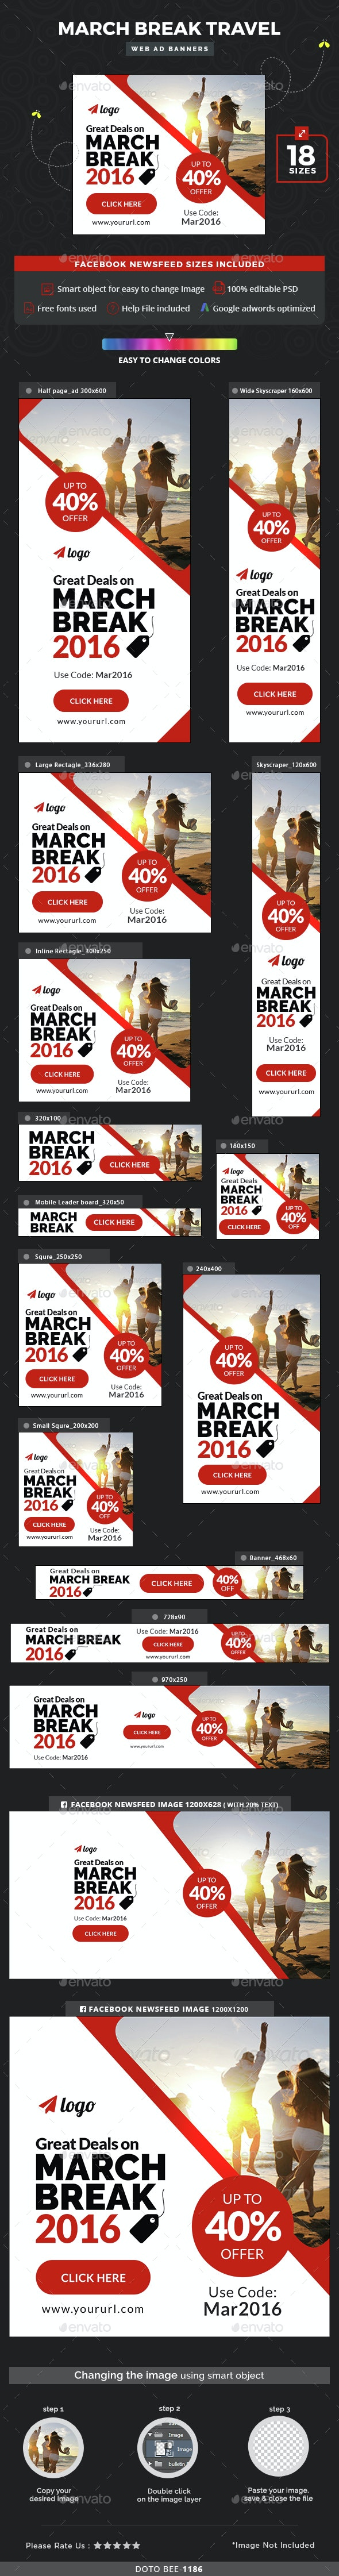 March Break Travel Banners - Banners & Ads Web Elements